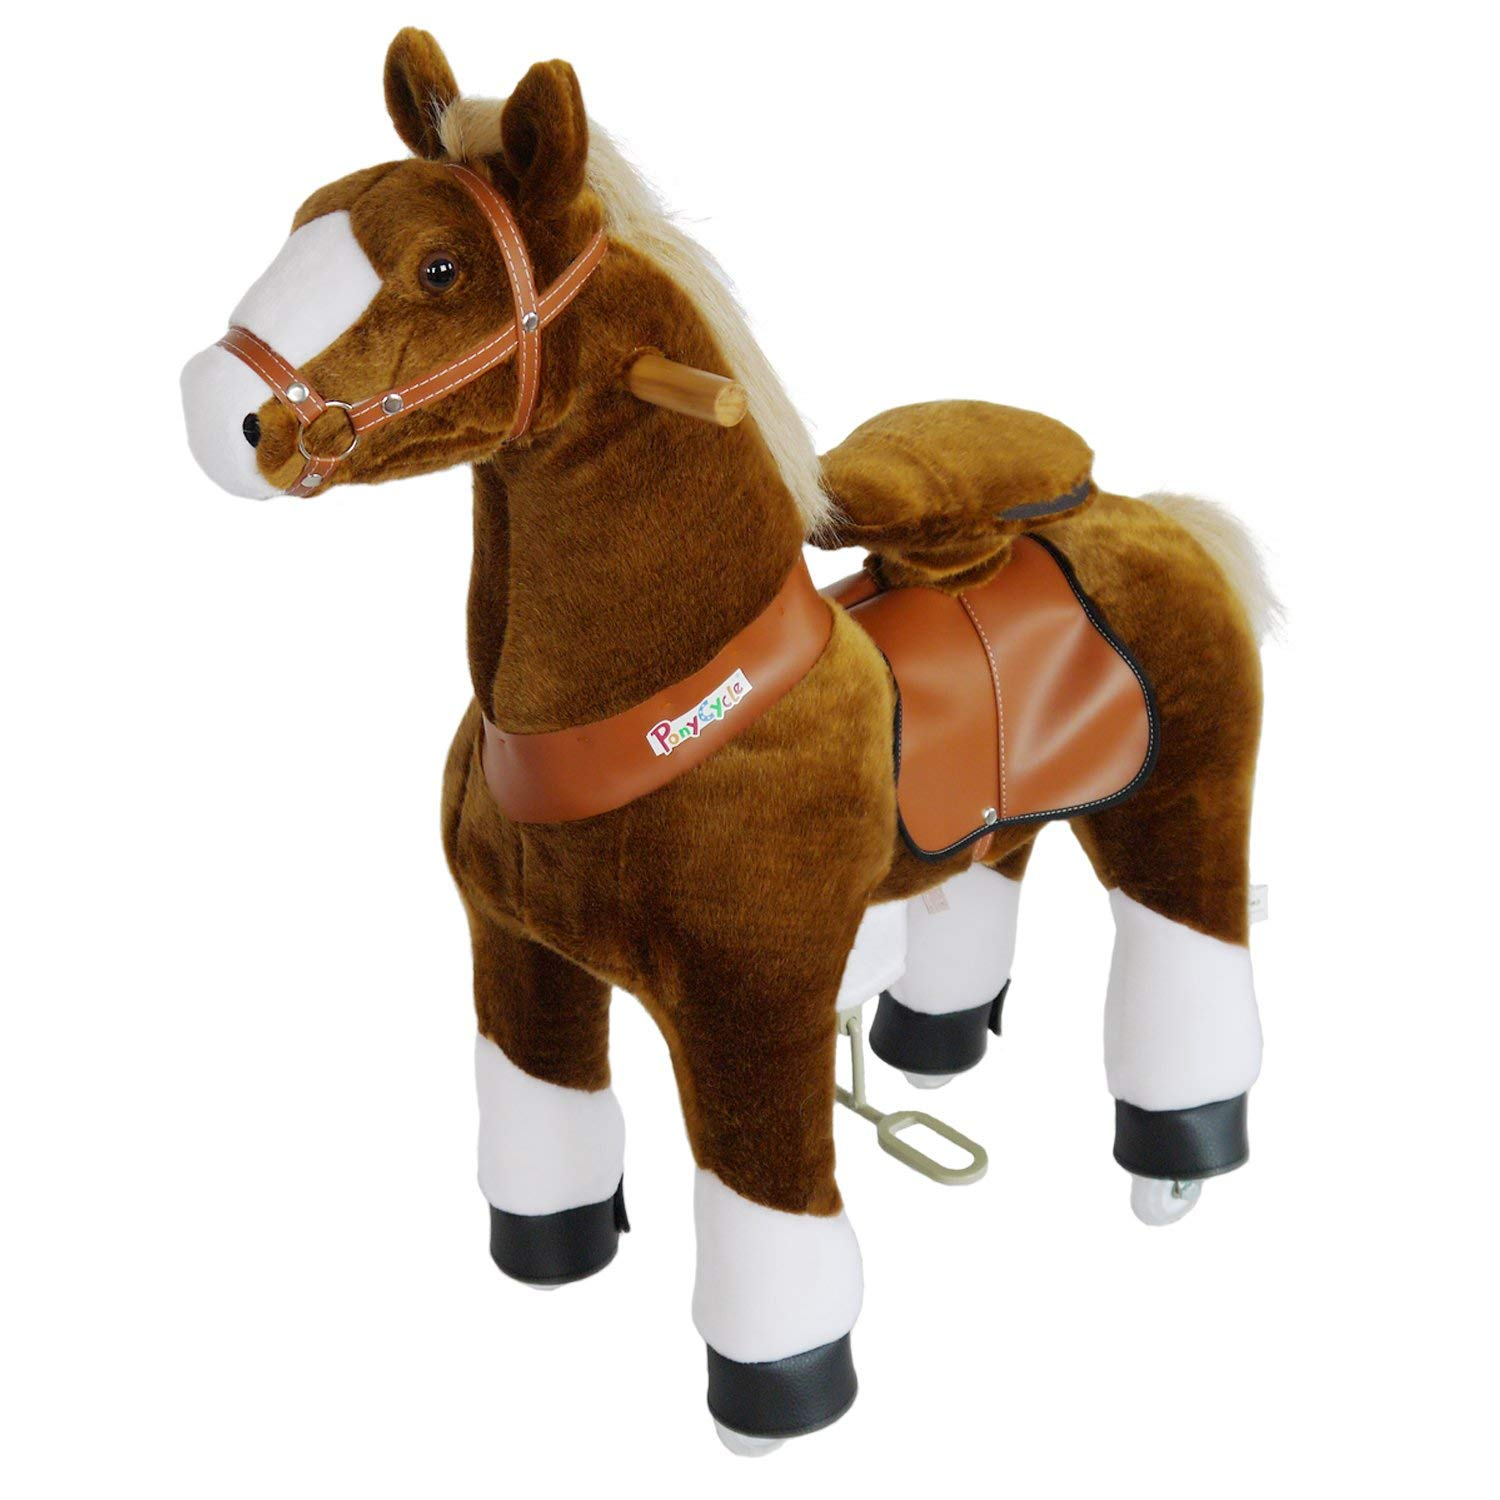 PonyCycle N4151 Ride On Horse Mechanical Horse Brown with White Hoof Medium for Age 4-9 …